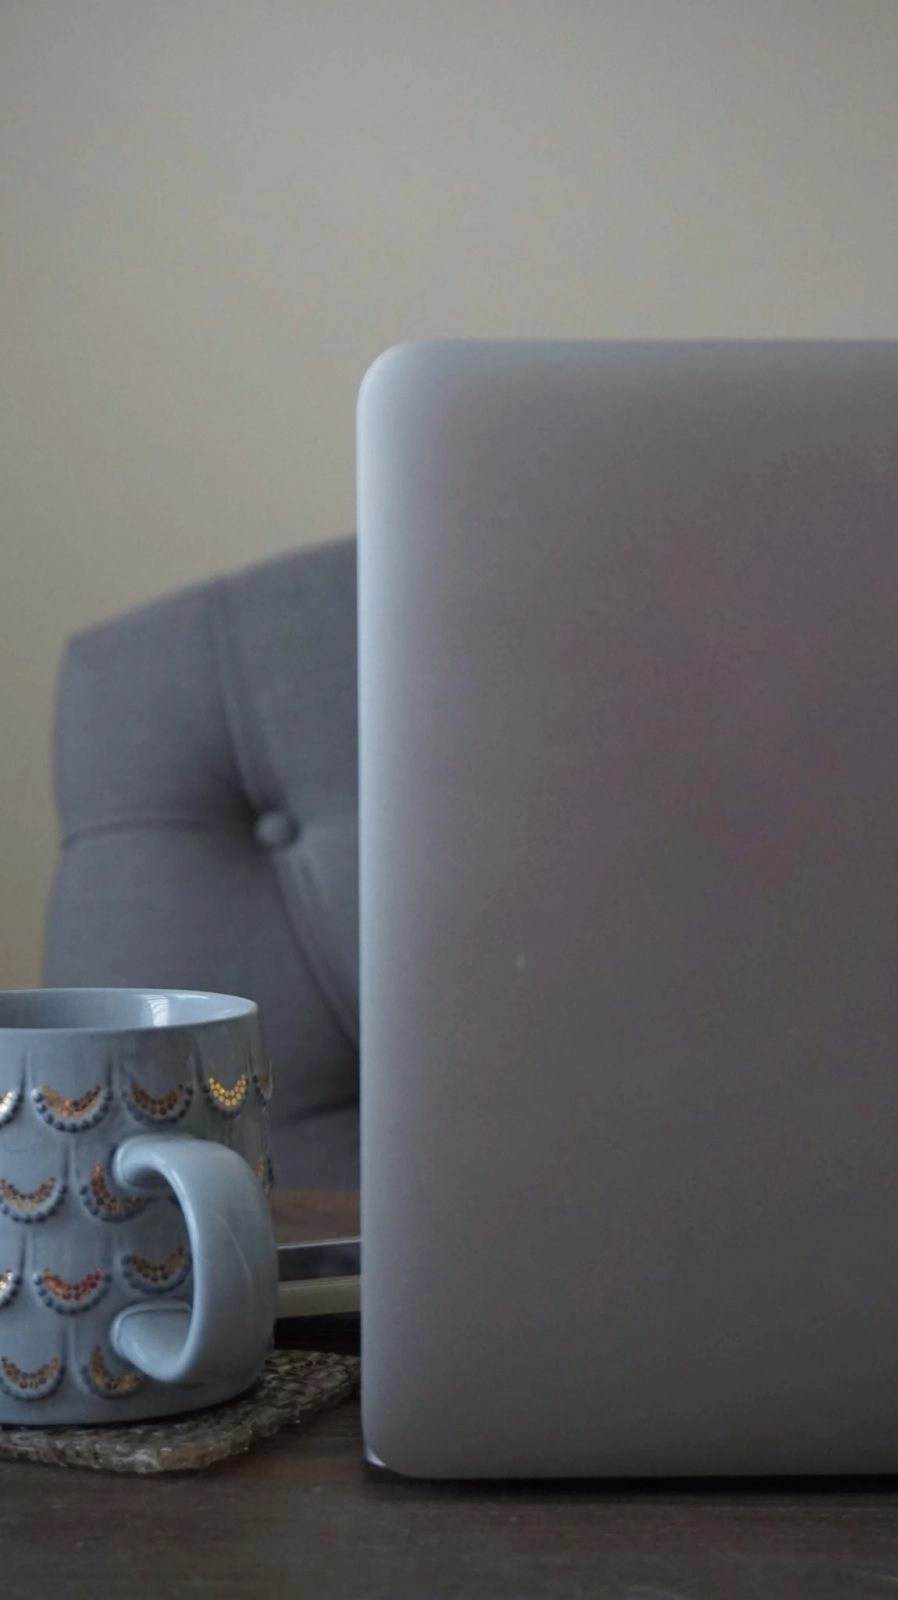 Computer and Coffee Cup Up Close